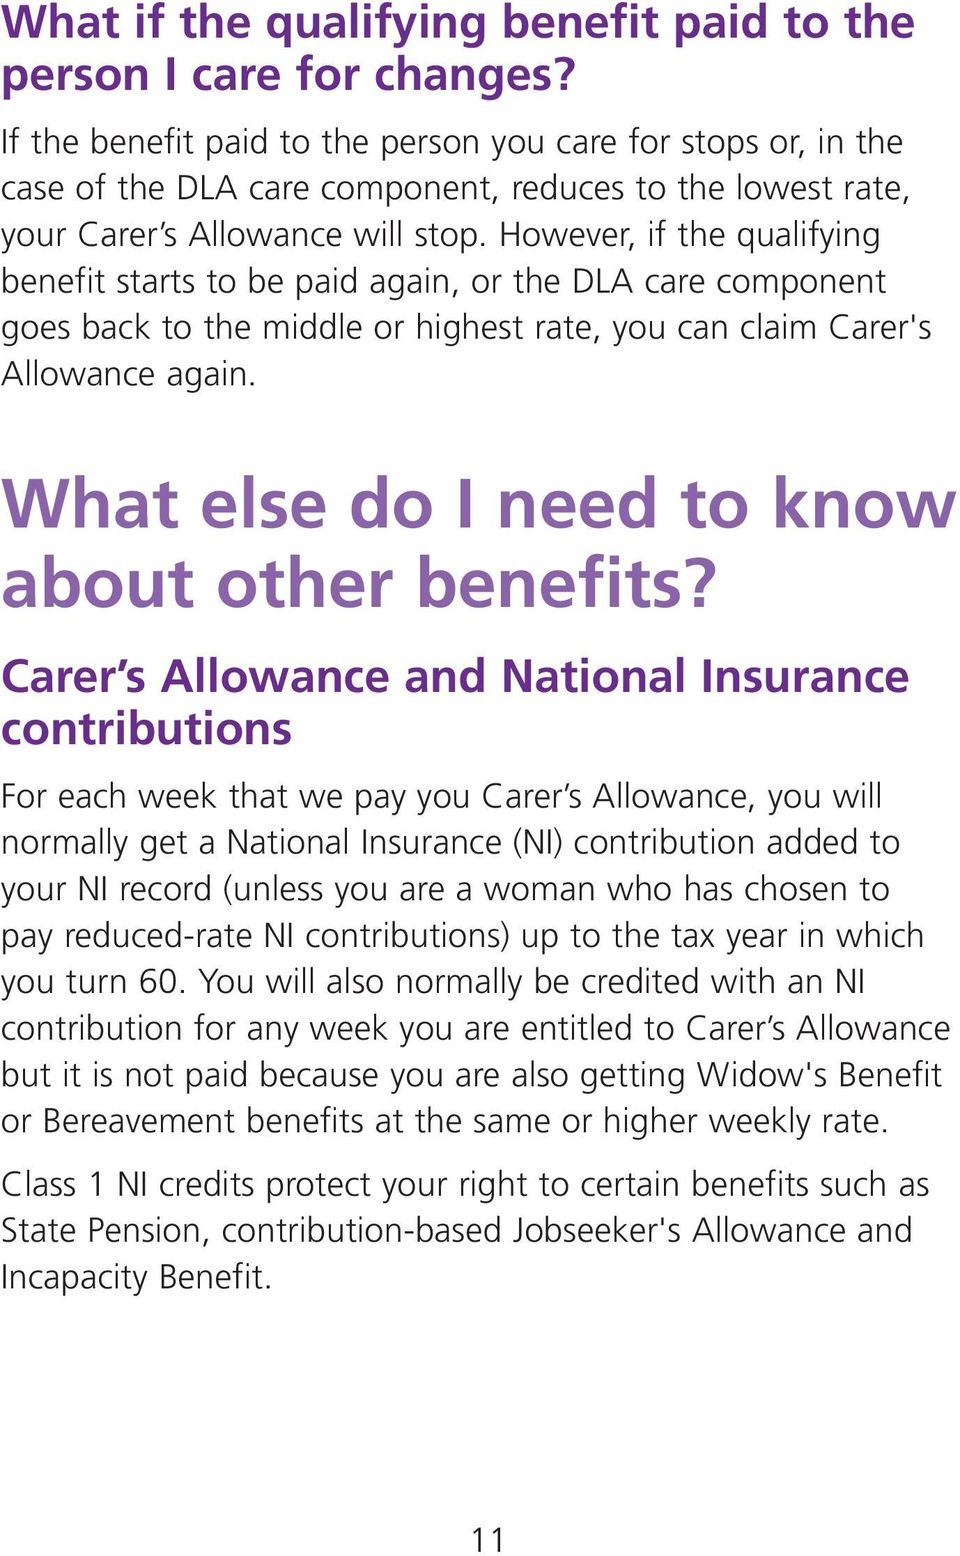 However, if the qualifying benefit starts to be paid again, or the DLA care component goes back to the middle or highest rate, you can claim Carer's Allowance again.